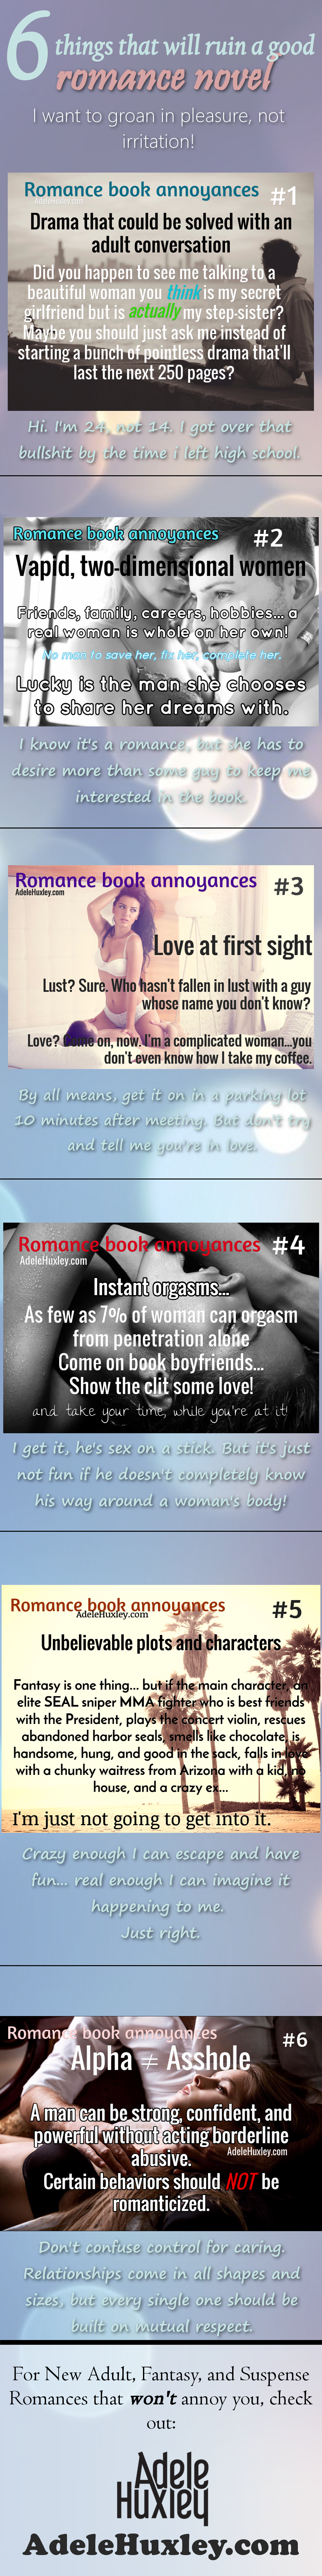 6 things that will ruin a good romance novel